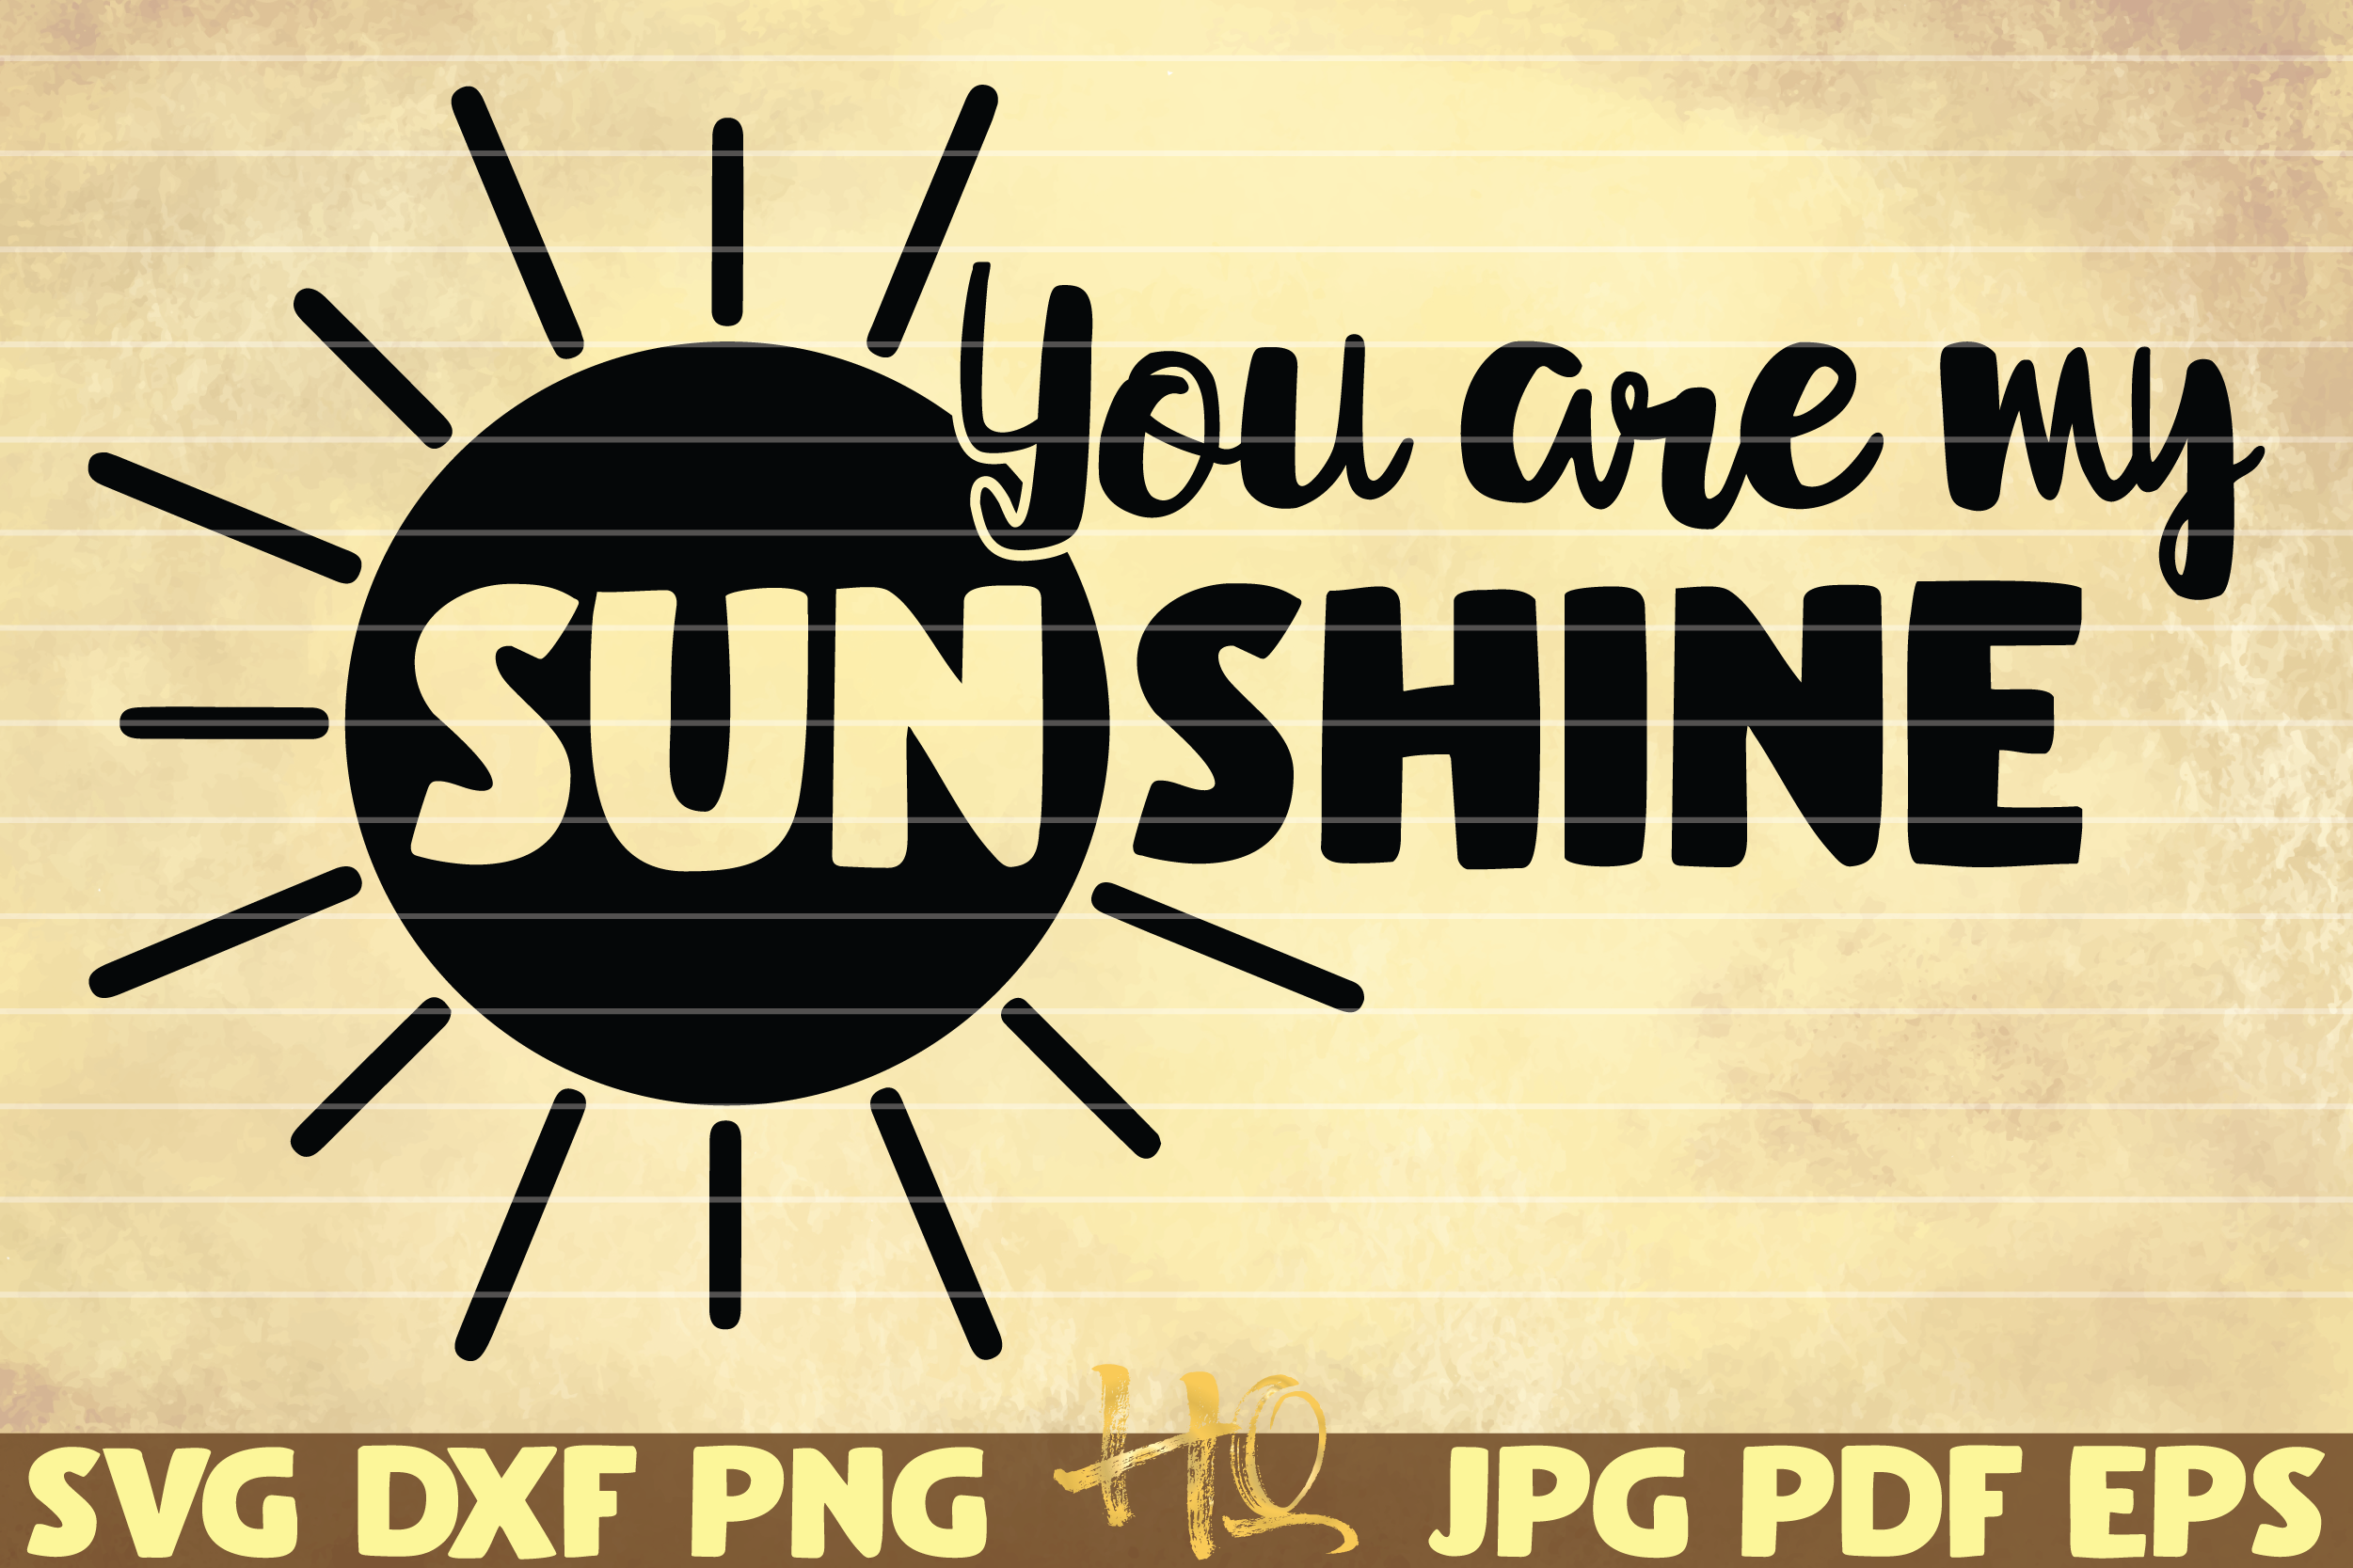 Download Free You Are My Sunshine Graphic By Mihaibadea95 Creative Fabrica for Cricut Explore, Silhouette and other cutting machines.